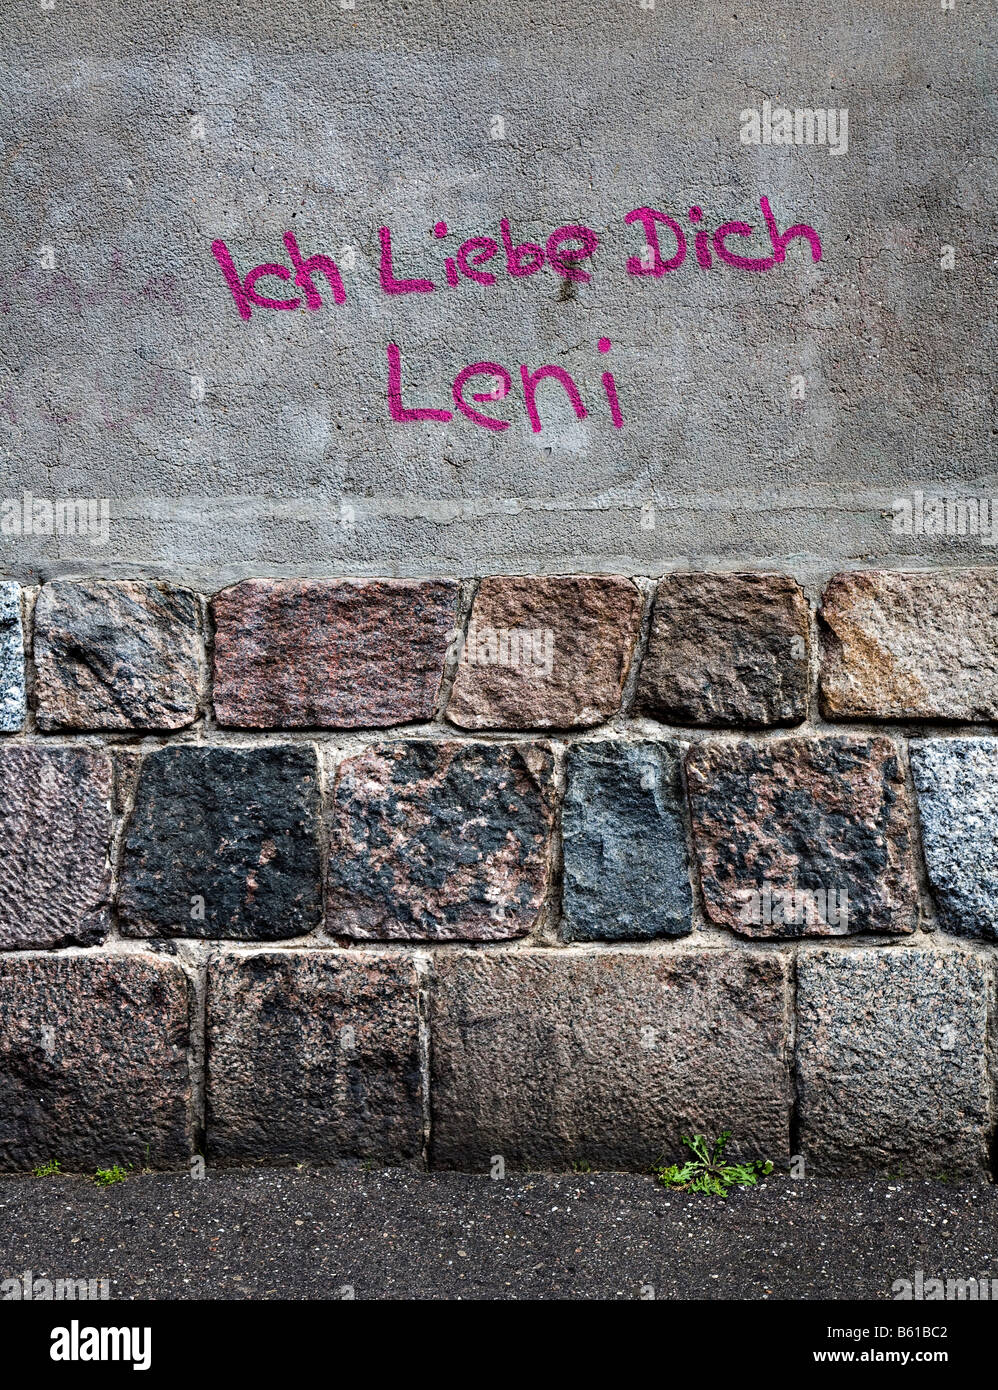 Ich Liebe Dich graffiti I Love You in German writing on wall Germany - Stock Image